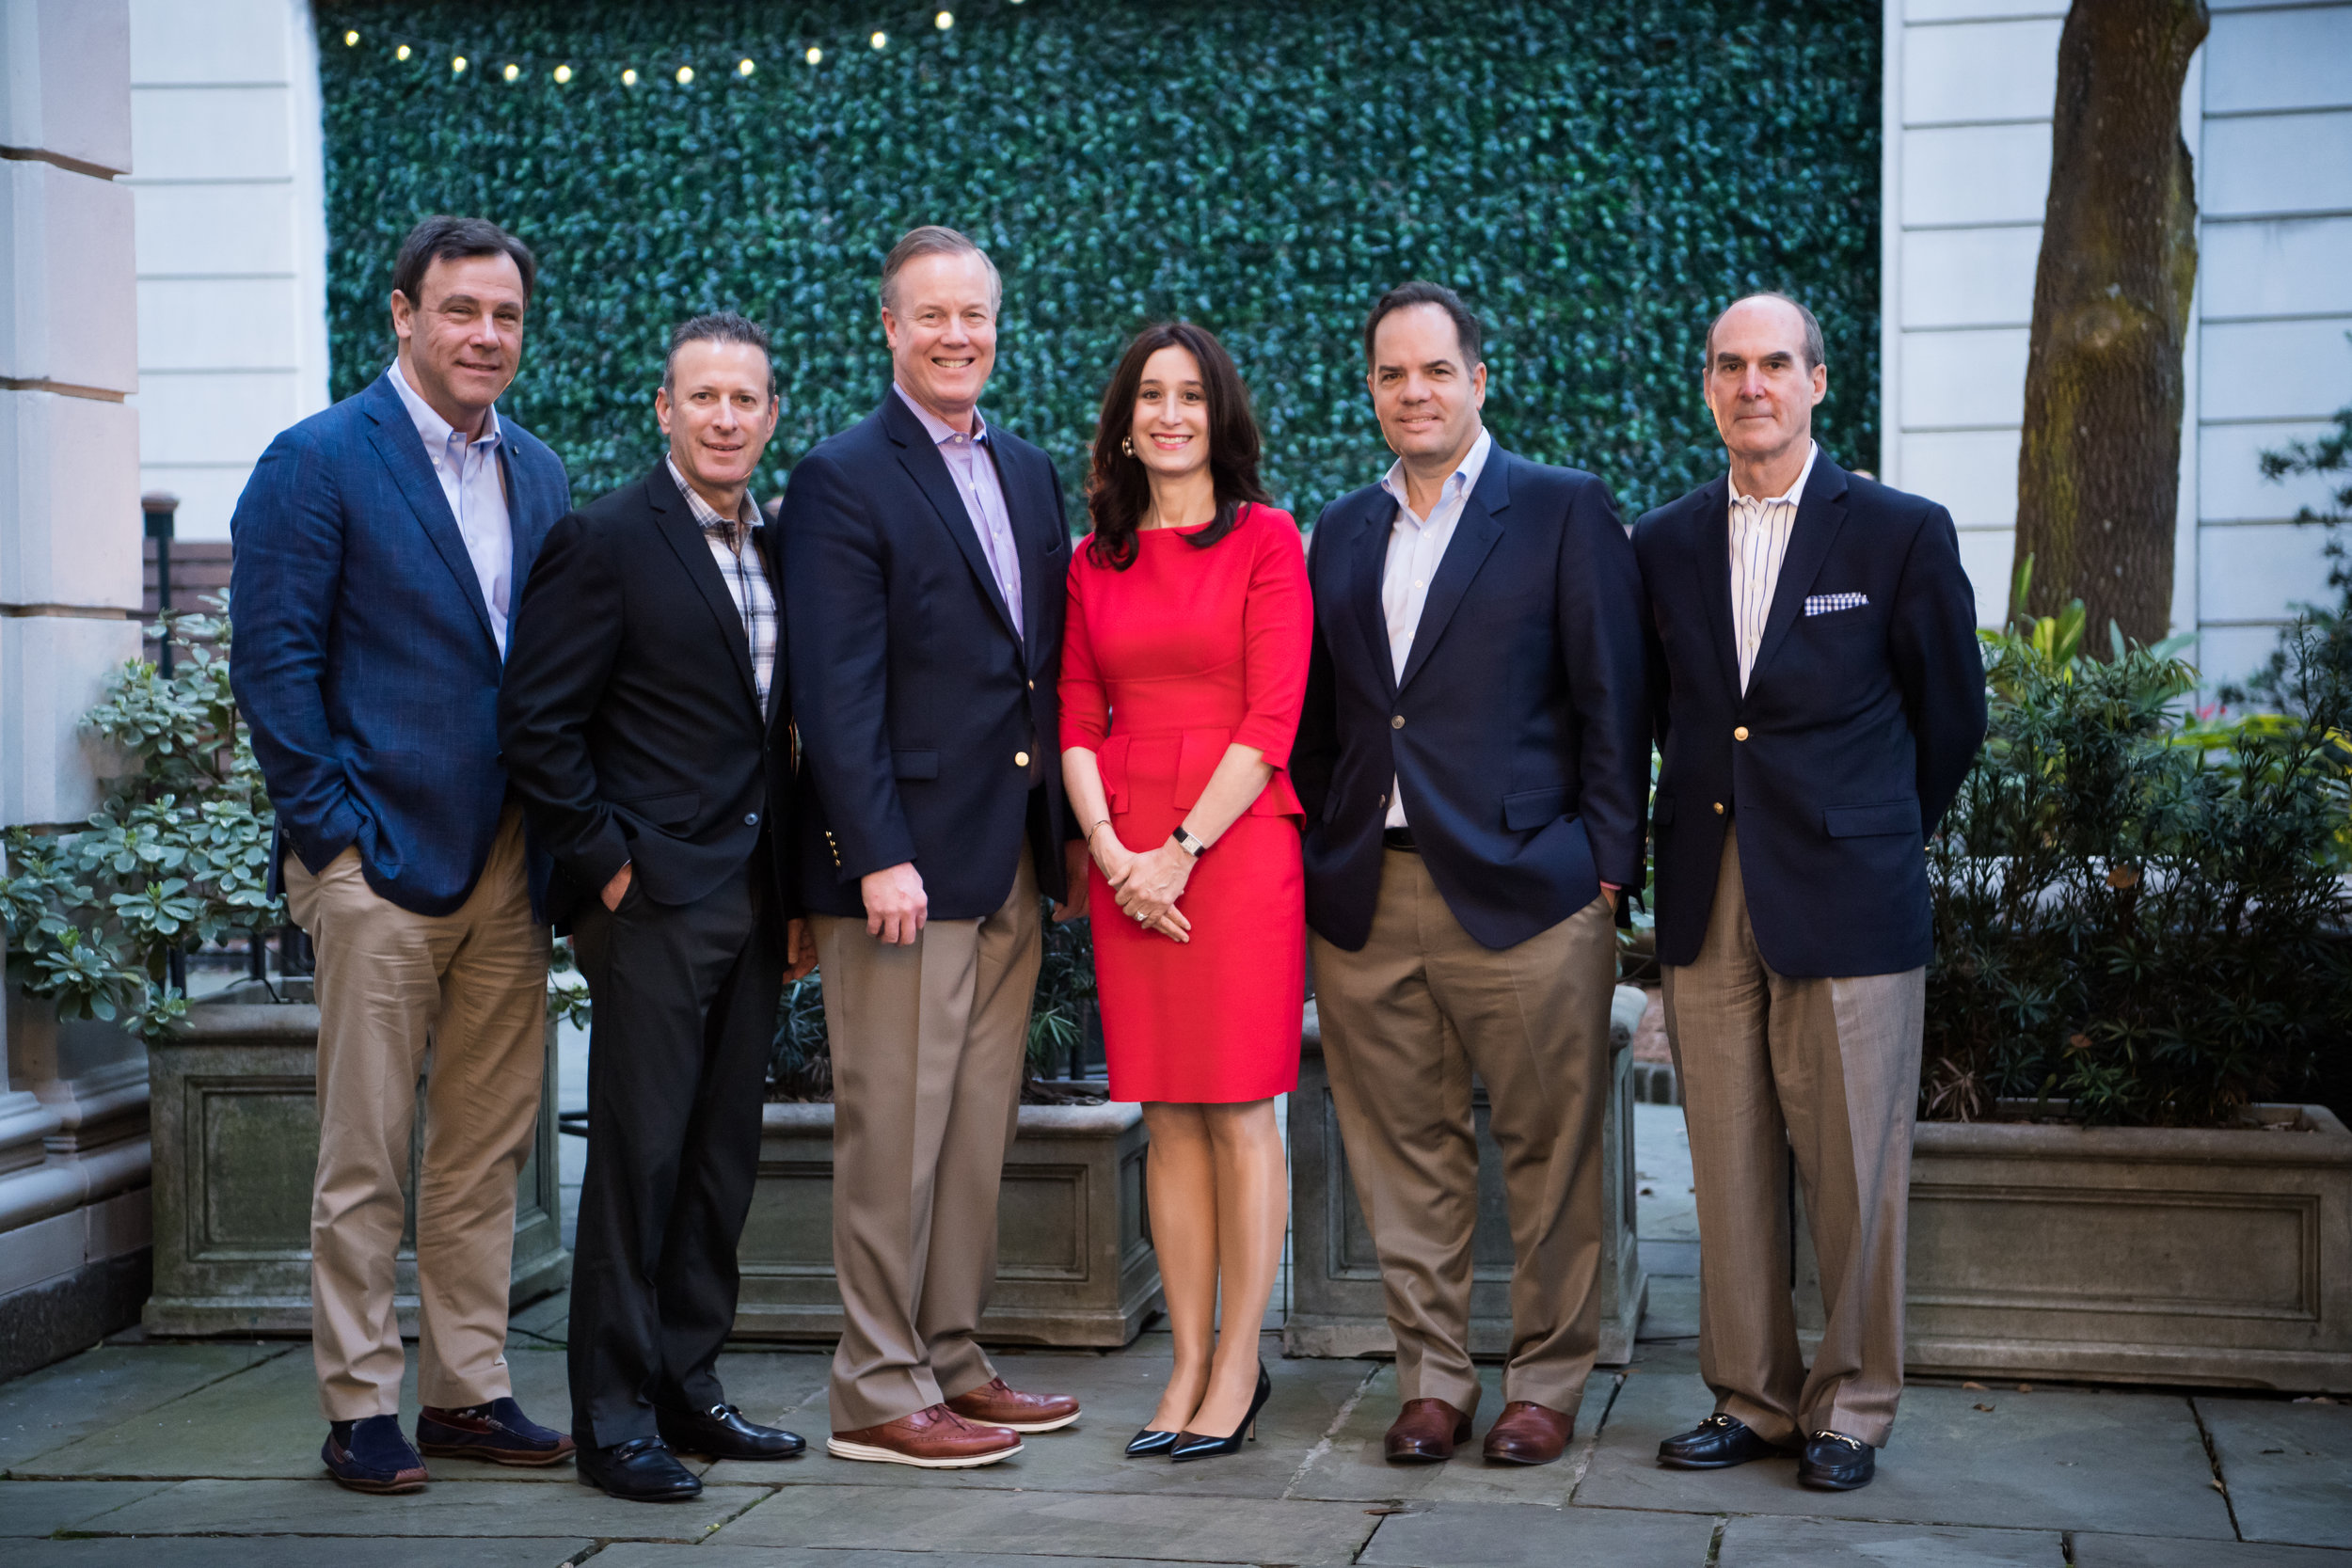 PURE's Subscribers' Advisory Committee. From left: Richard Jacobs, Douglas Fields, William W. Wilson III, Jodi Lash (Chair), Ross Buchmueller, and James H. McLaughlin. Missing from the photo is Joey Cummings. For additional information and bios, visit    pureinsurance.com/sac   . To contact the SAC, email    sac@pureinsurance.com   .